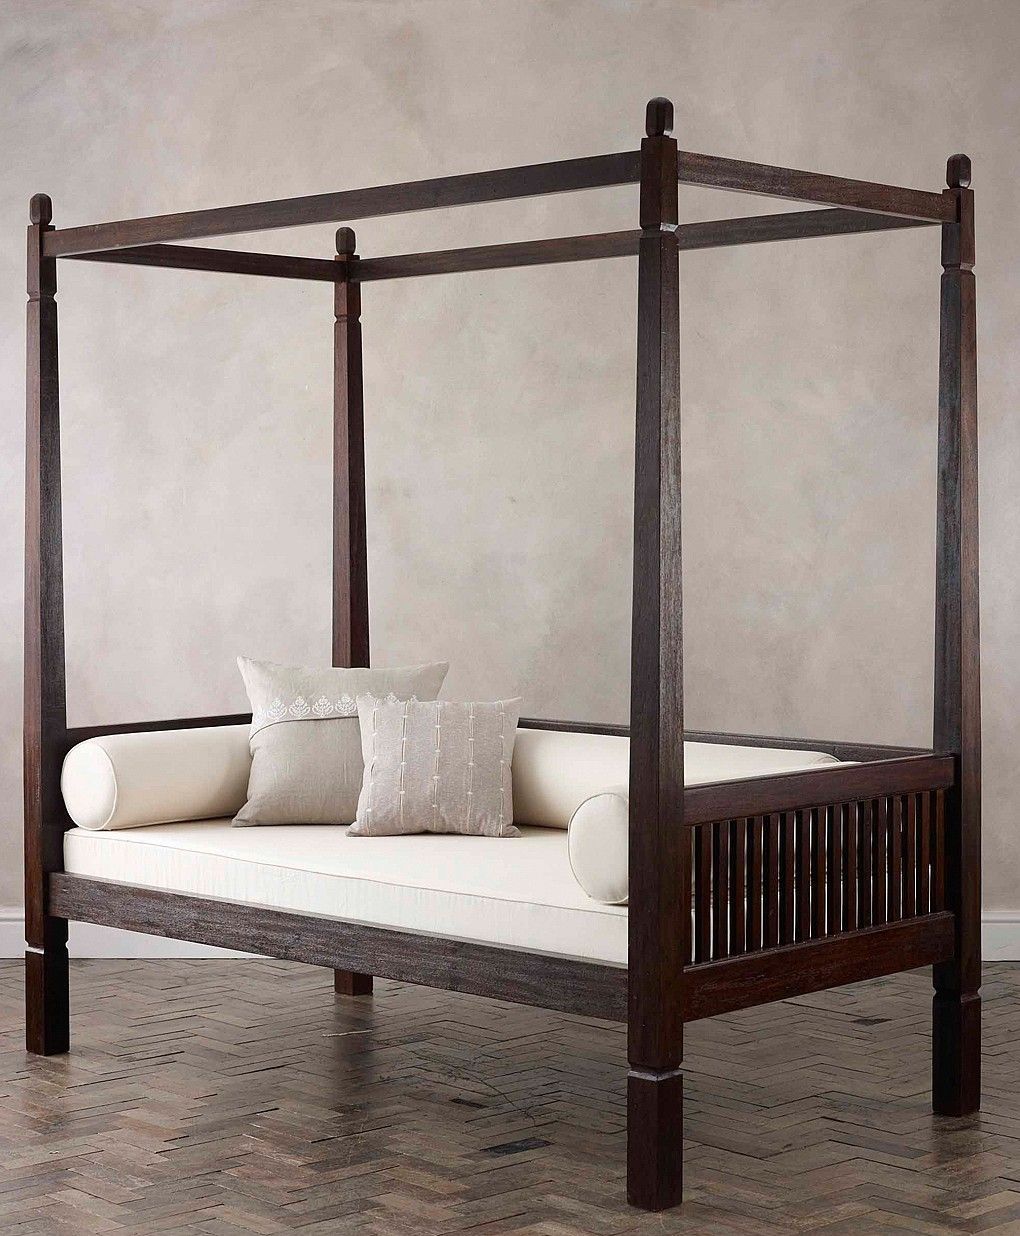 ball end four poster day bed | colorado decor/home | pinterest